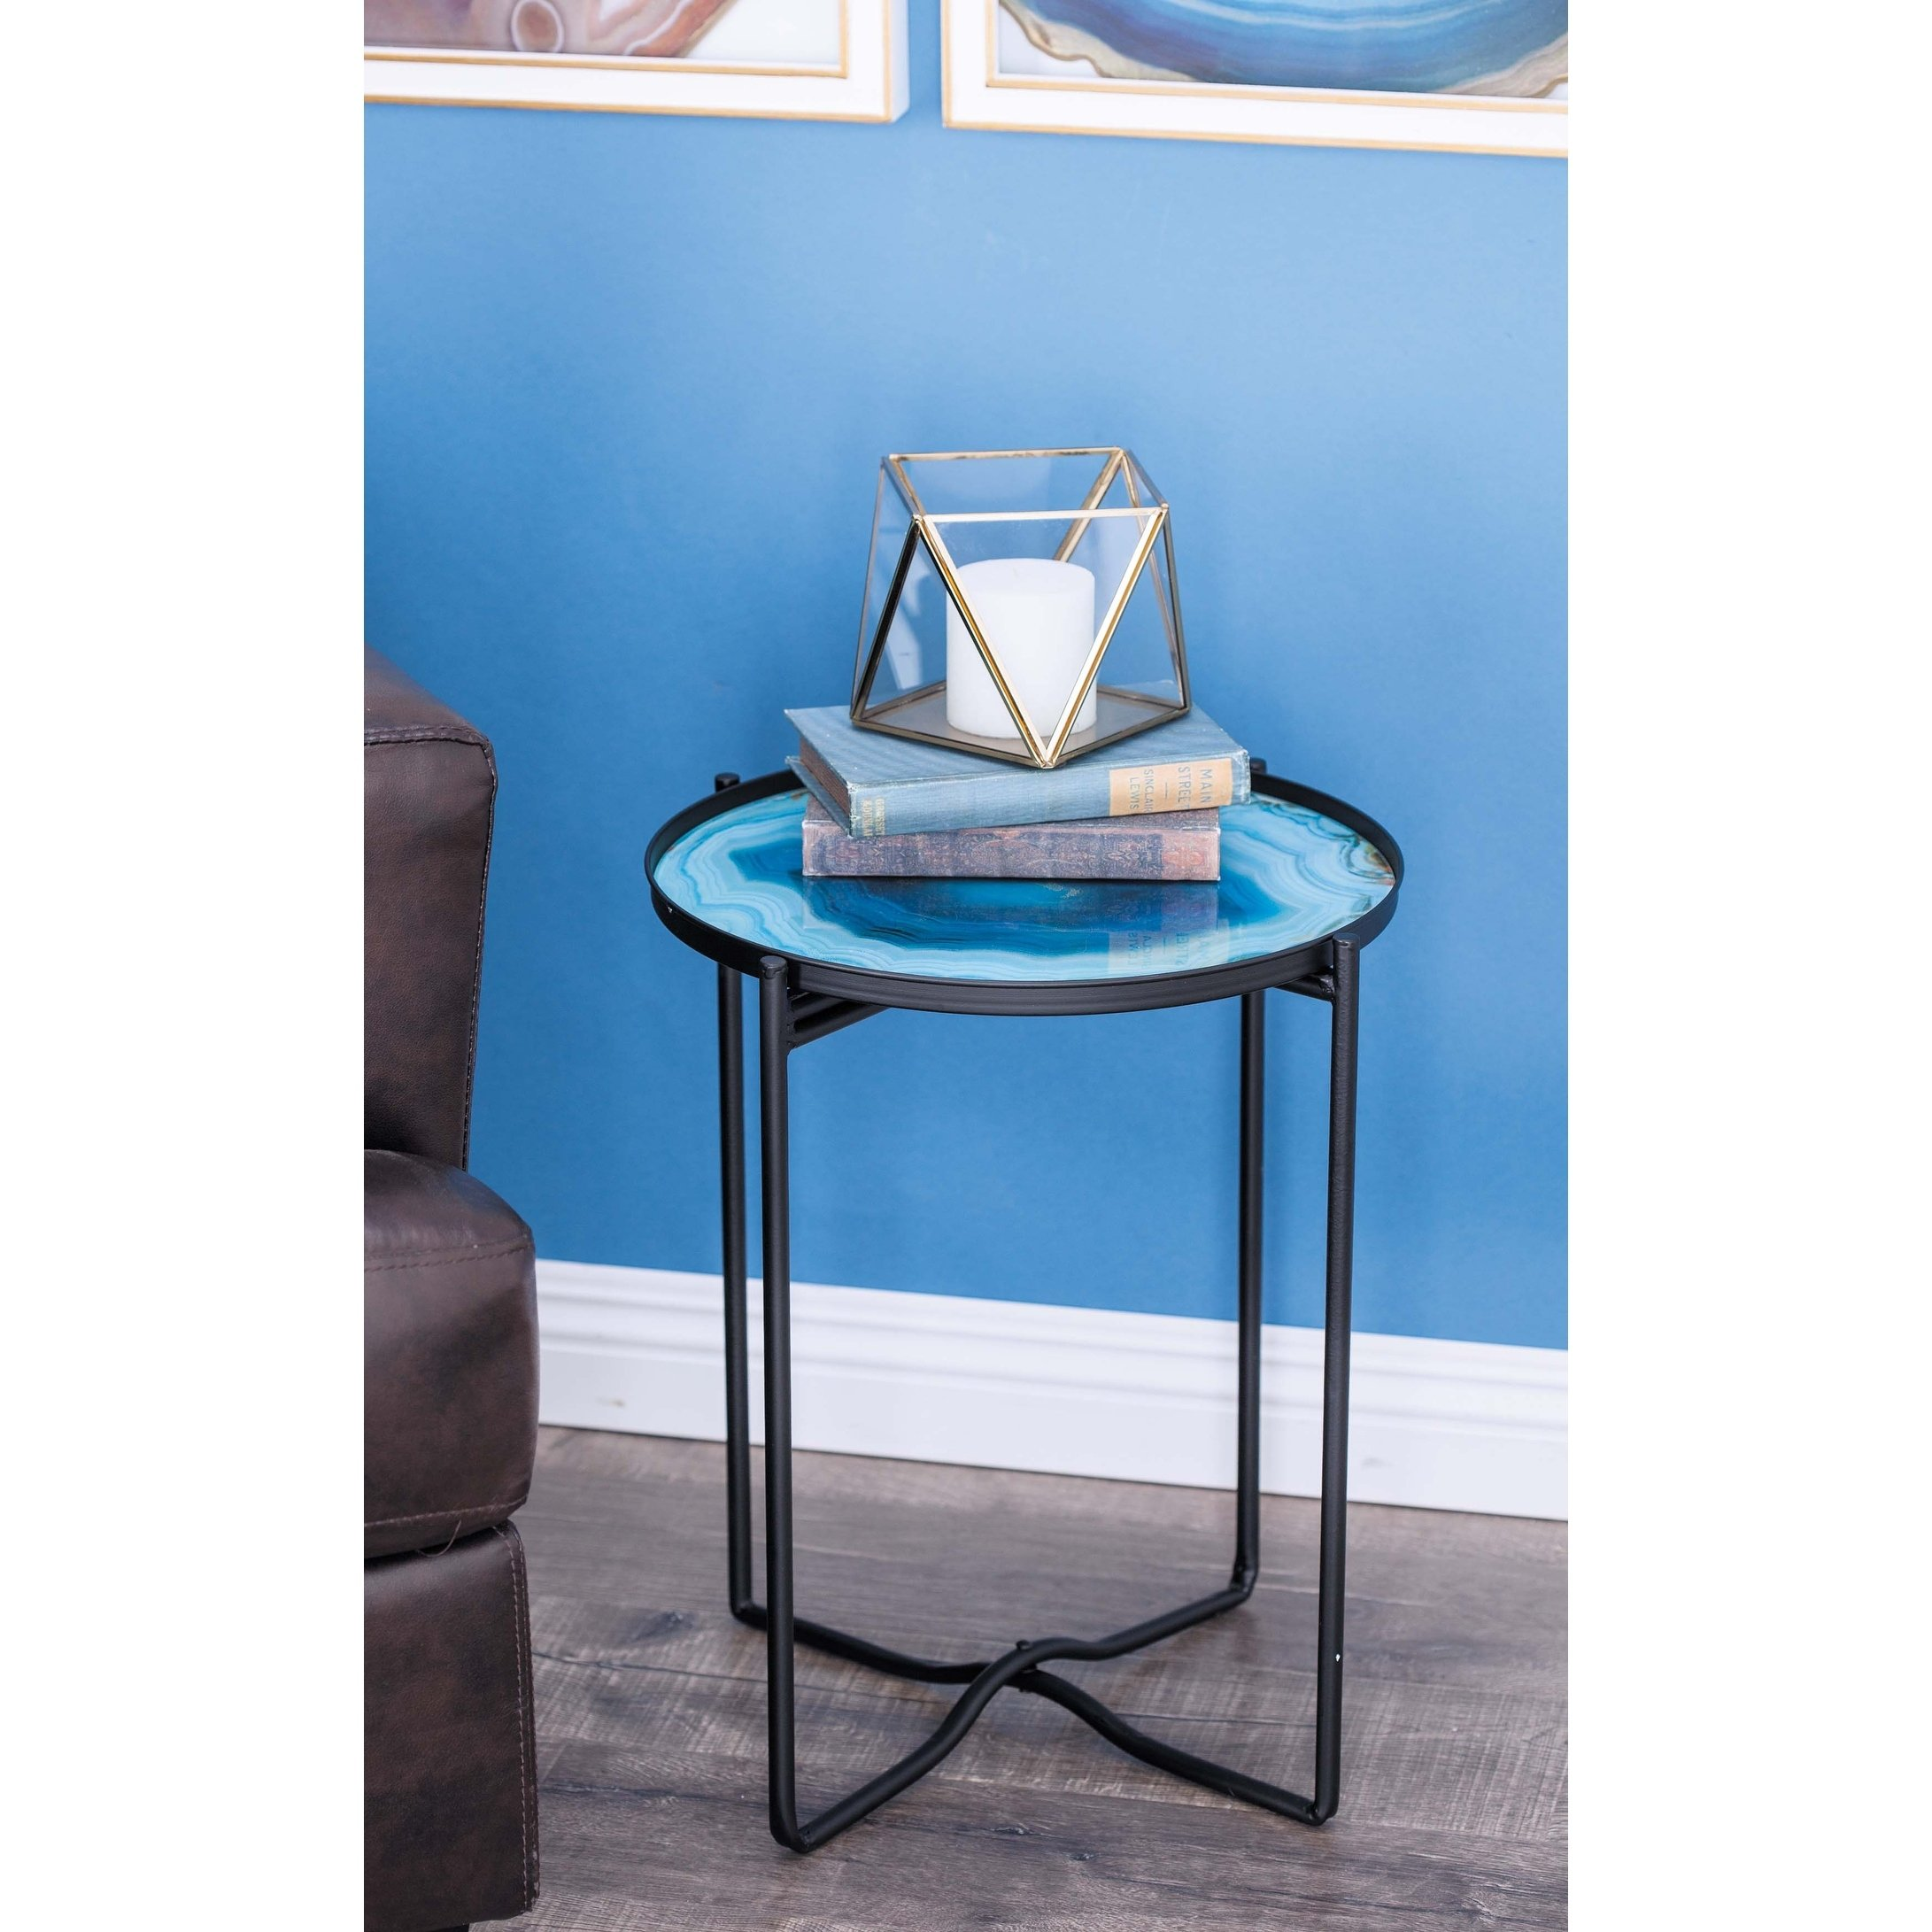 contemporary inch round blue glass accent table studio metal free shipping today kitchen dining room tables computer target homepop light wood end carpet tile edging strip